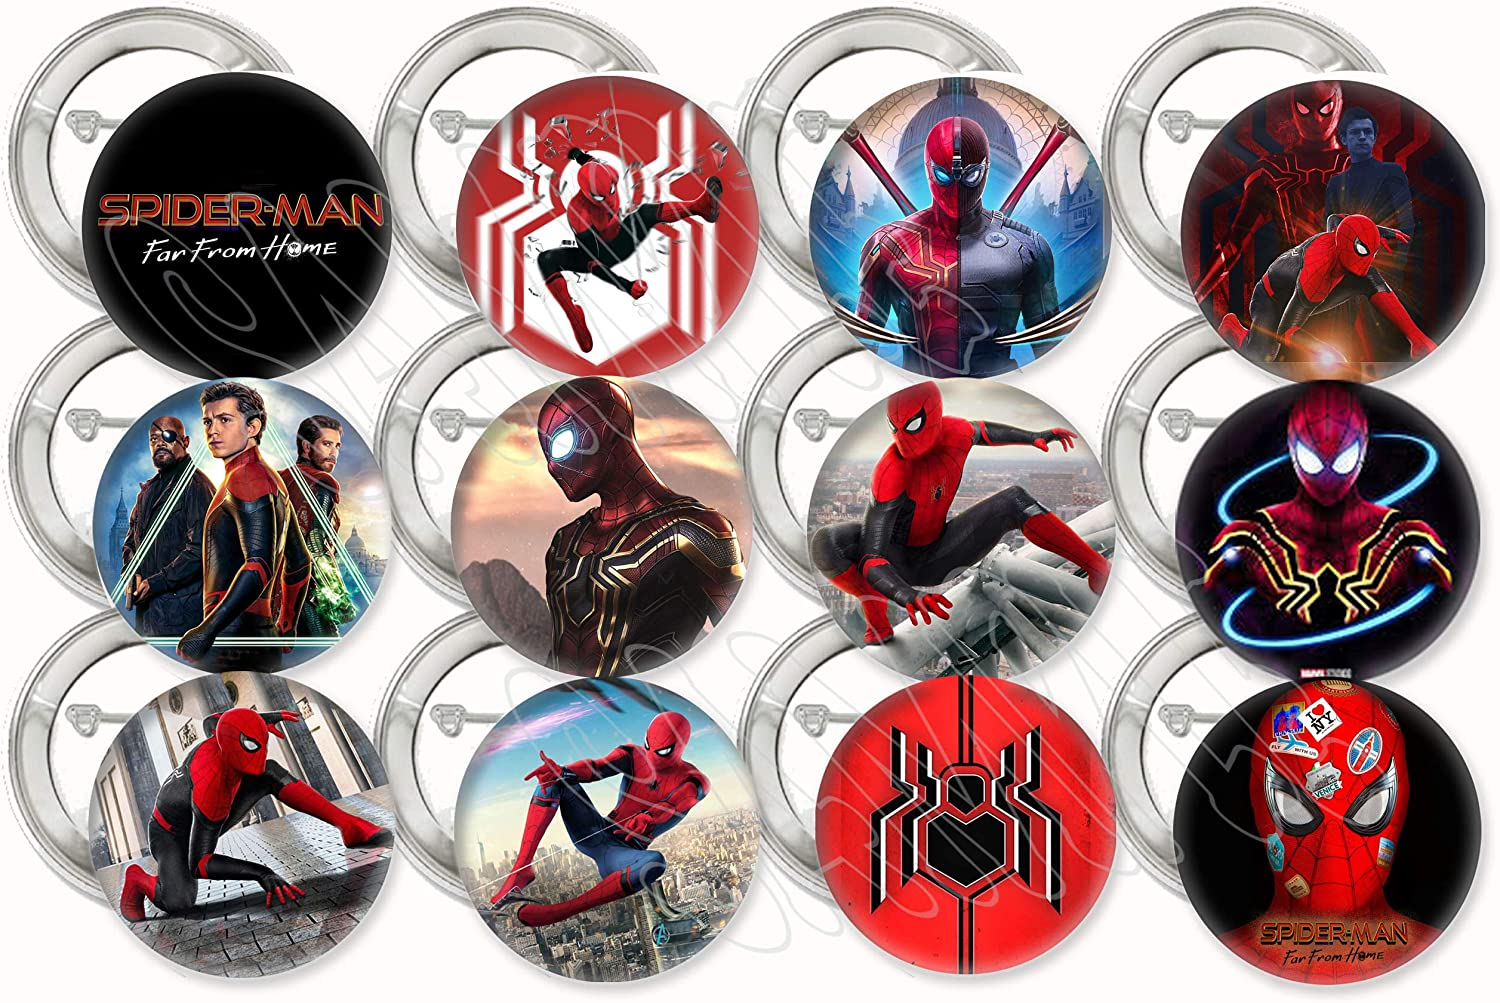 """Spiderman Far from Home Movie Buttons Party Favors Supplies Decorations Collectible Metal Pinback Buttons Pins, Large 2.25"""" -12 pcs Avengers Comics Super Hero"""